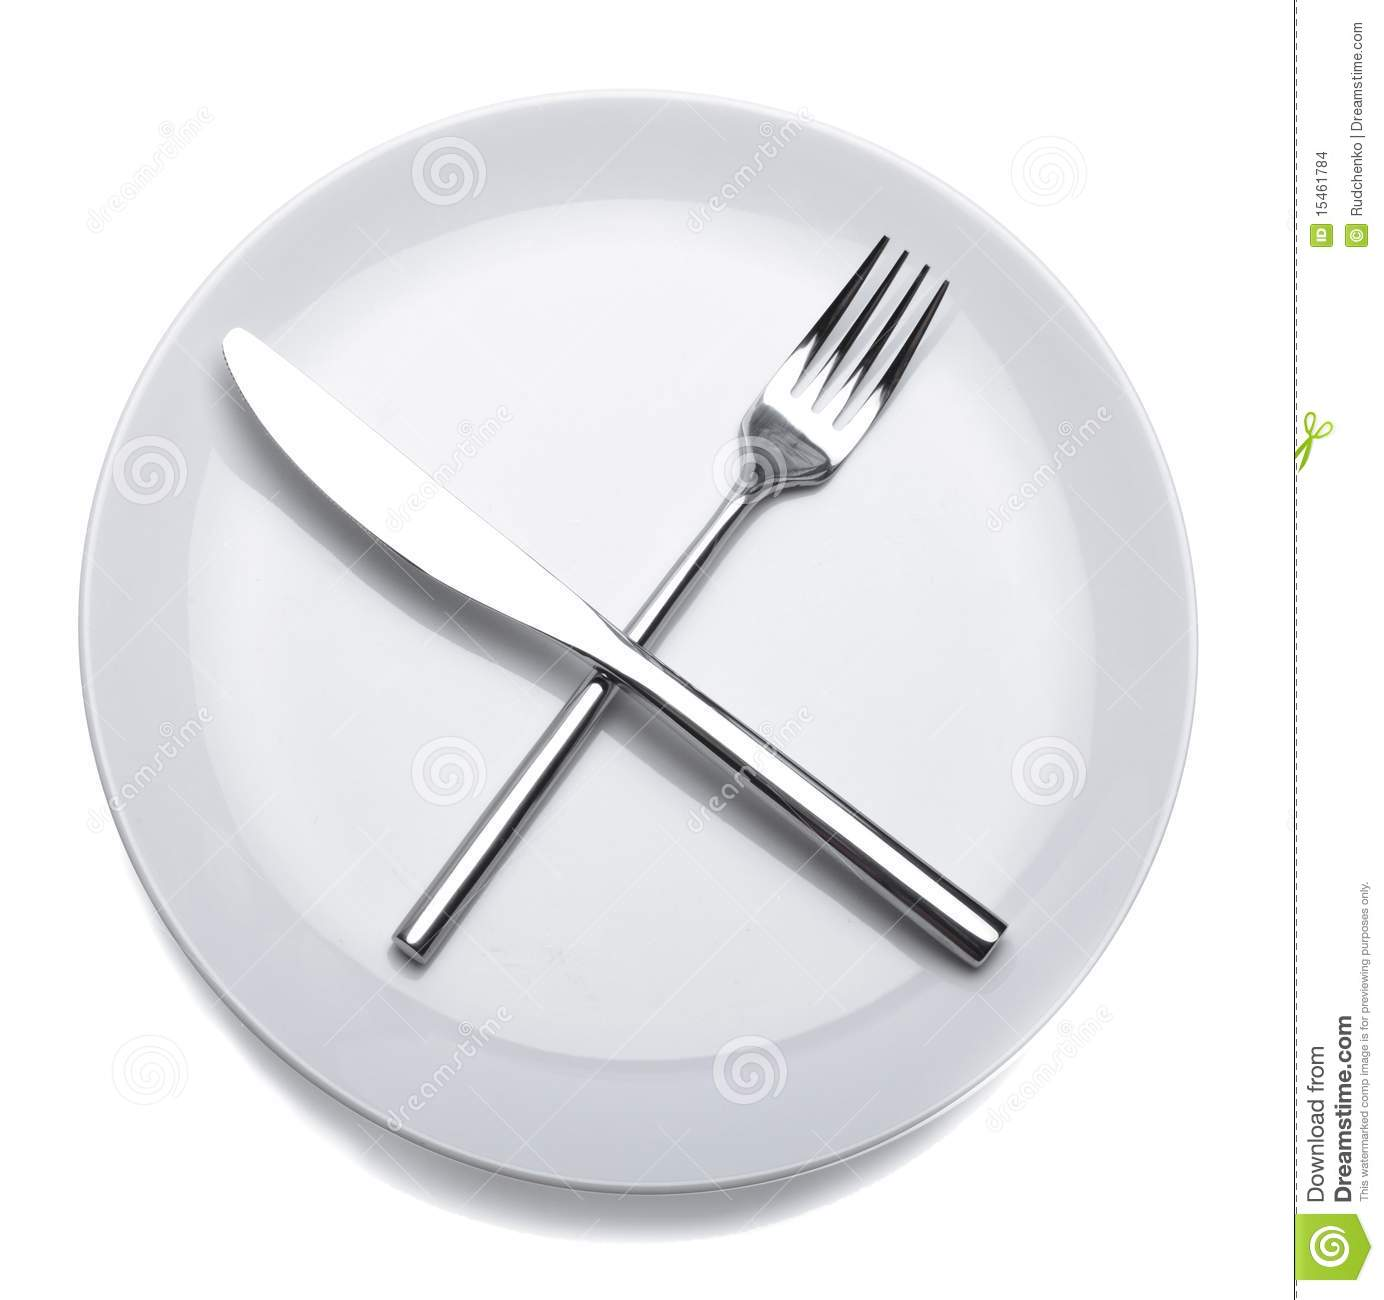 An empty white dish with knife and fork on a table - An Empty White Dish With Knife And Fork On A Table 48